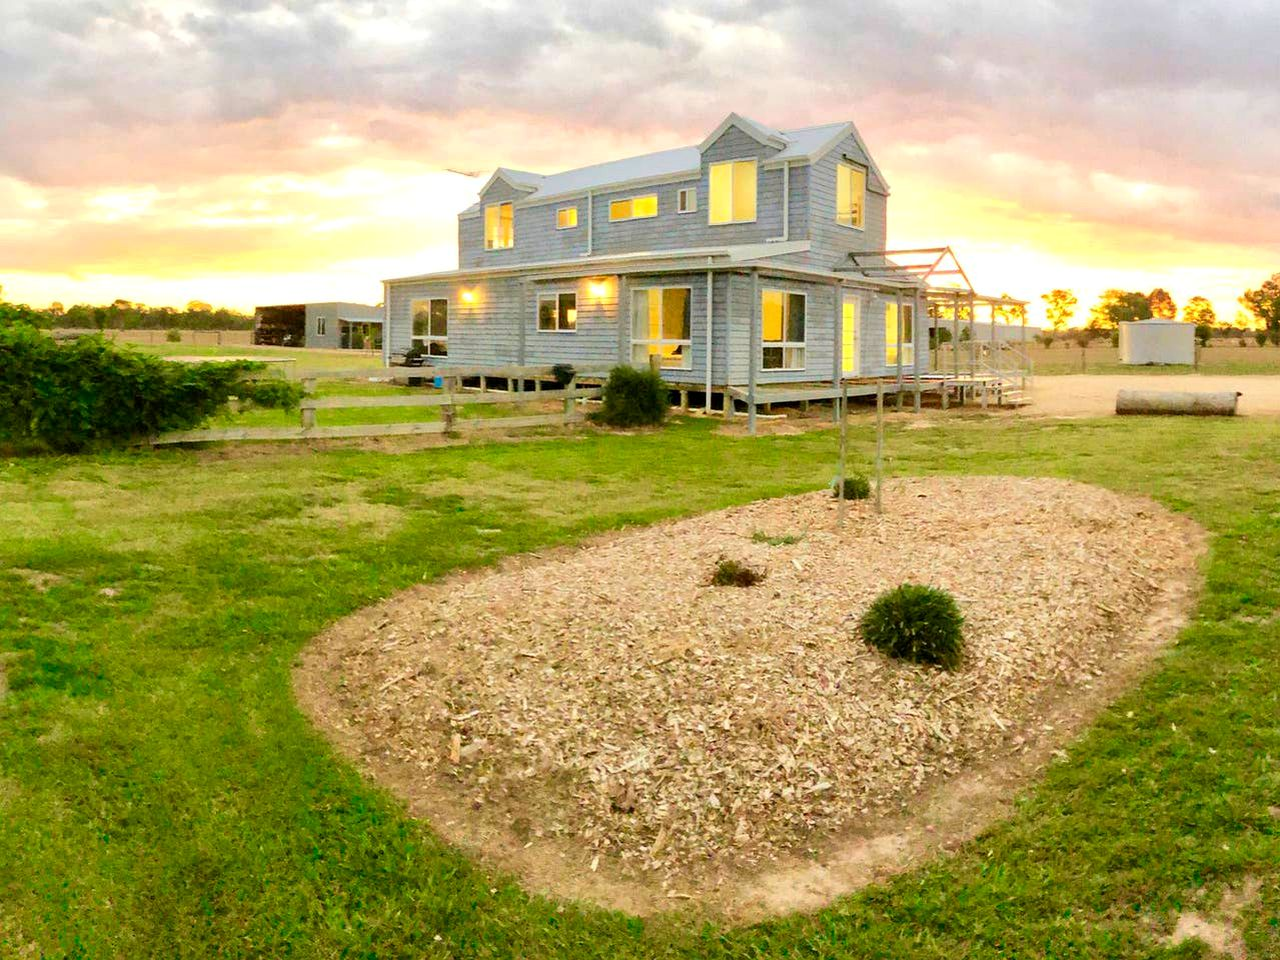 The Oxley accommodation can sleep a whole family looking to enjoy a farm stay. Victoria is a great place to explore.